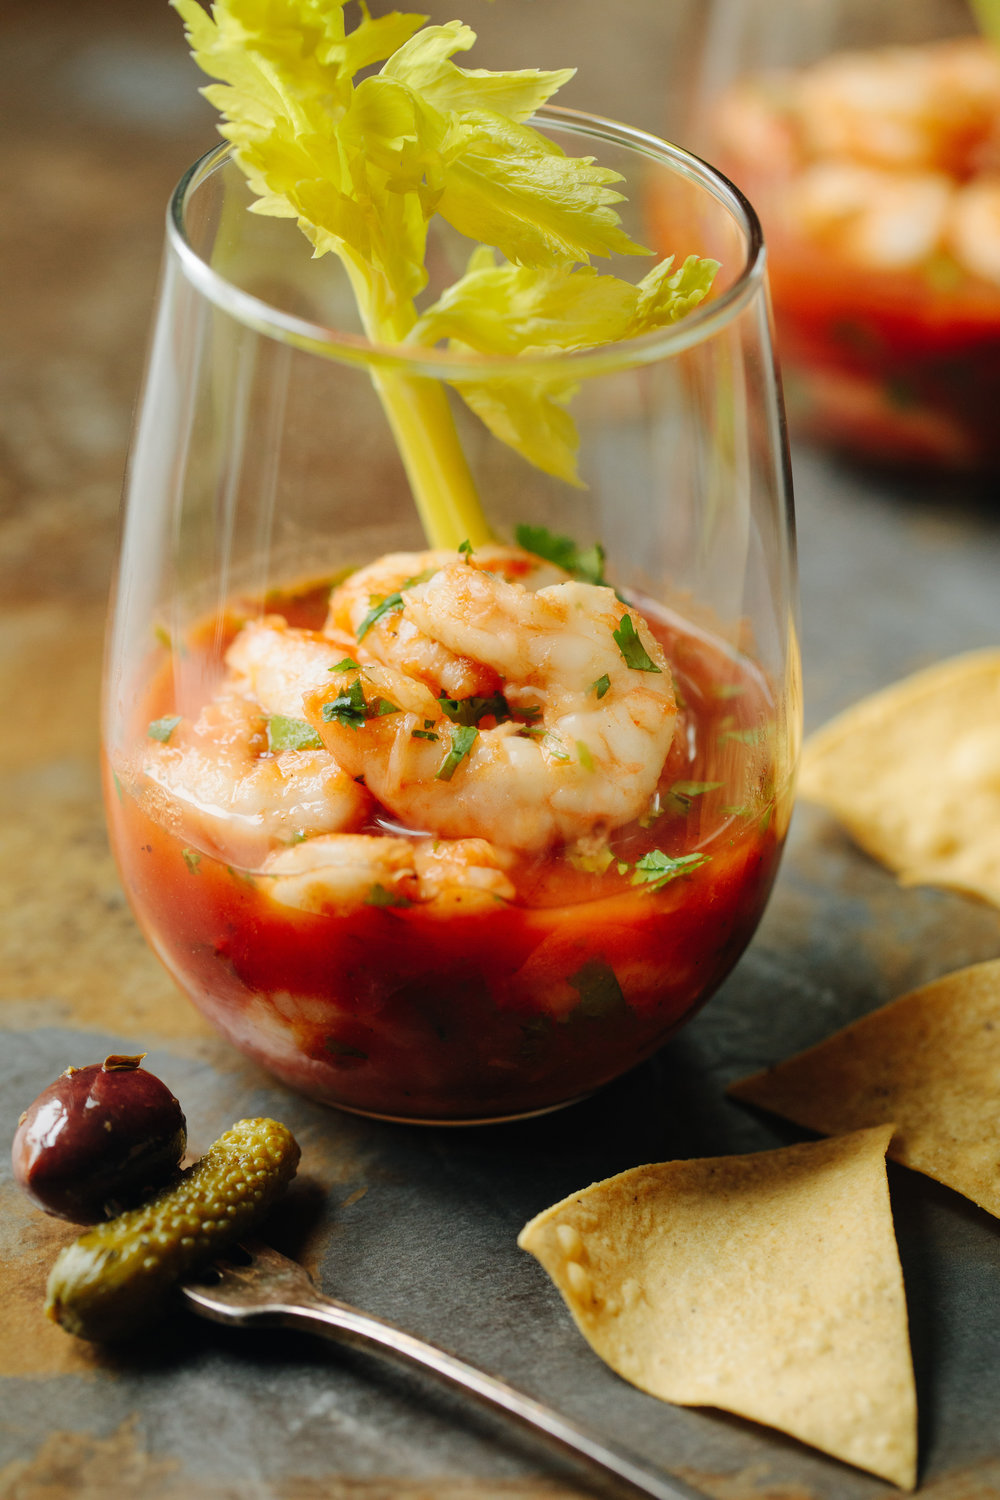 THE ART OF THE MASHUP_Bloody Mary Ceviche_BRIAN SAMUELS PHOTOGRAPHY-6652.jpg